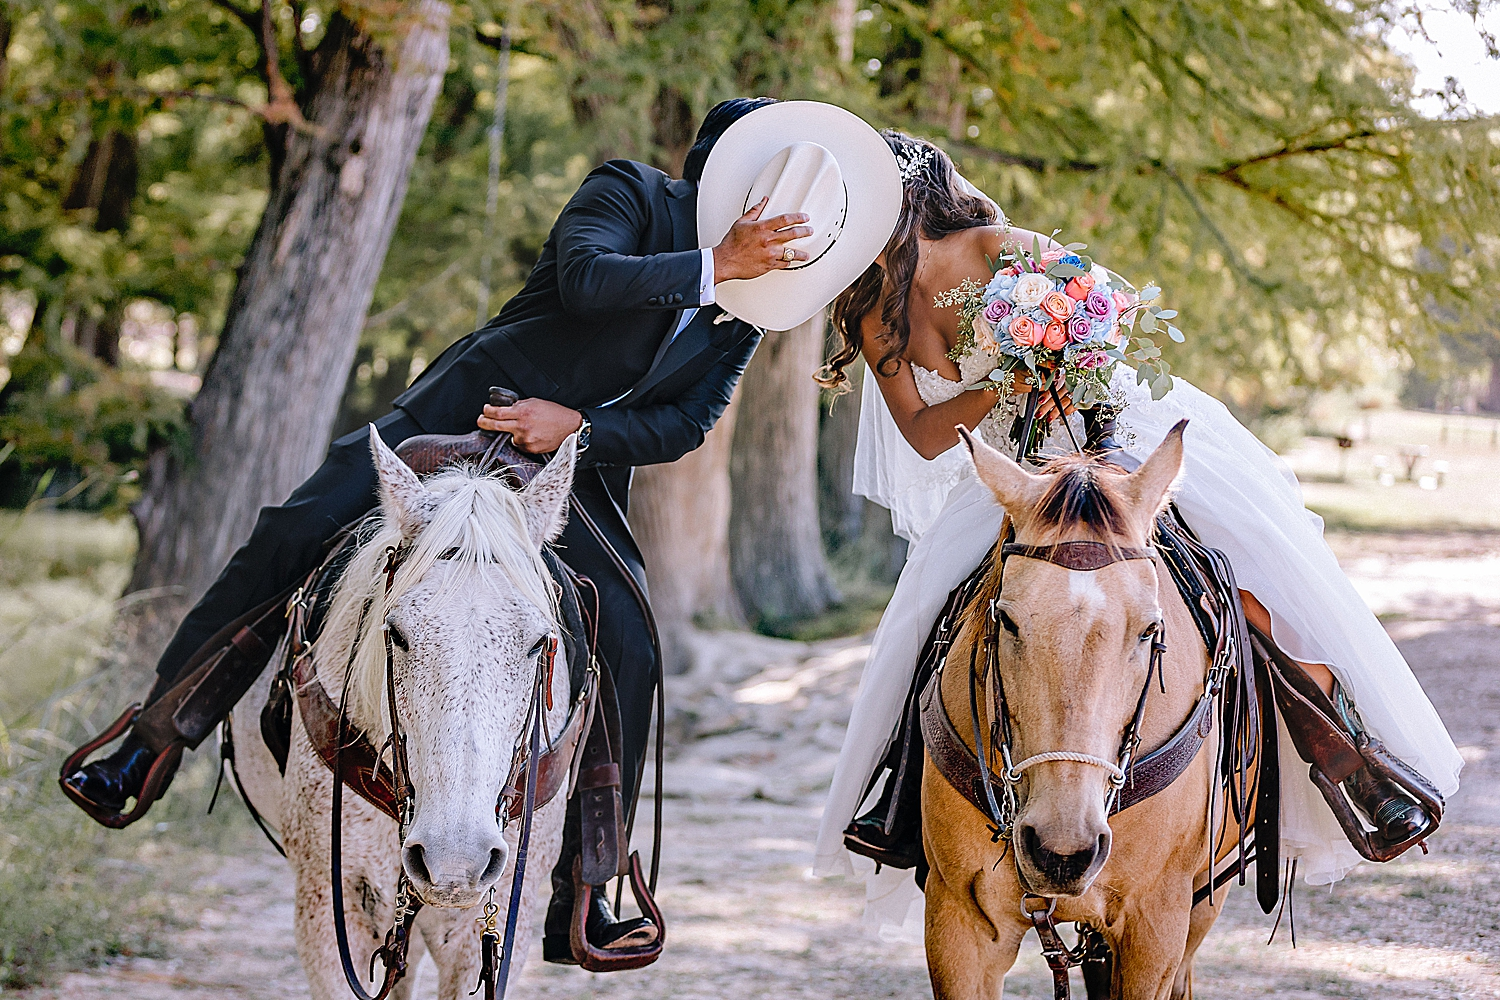 Bandera-Texas-Wedding-Photographer-Bride-Groom-on-Horses-Carly-Barton-Photography_0128.jpg